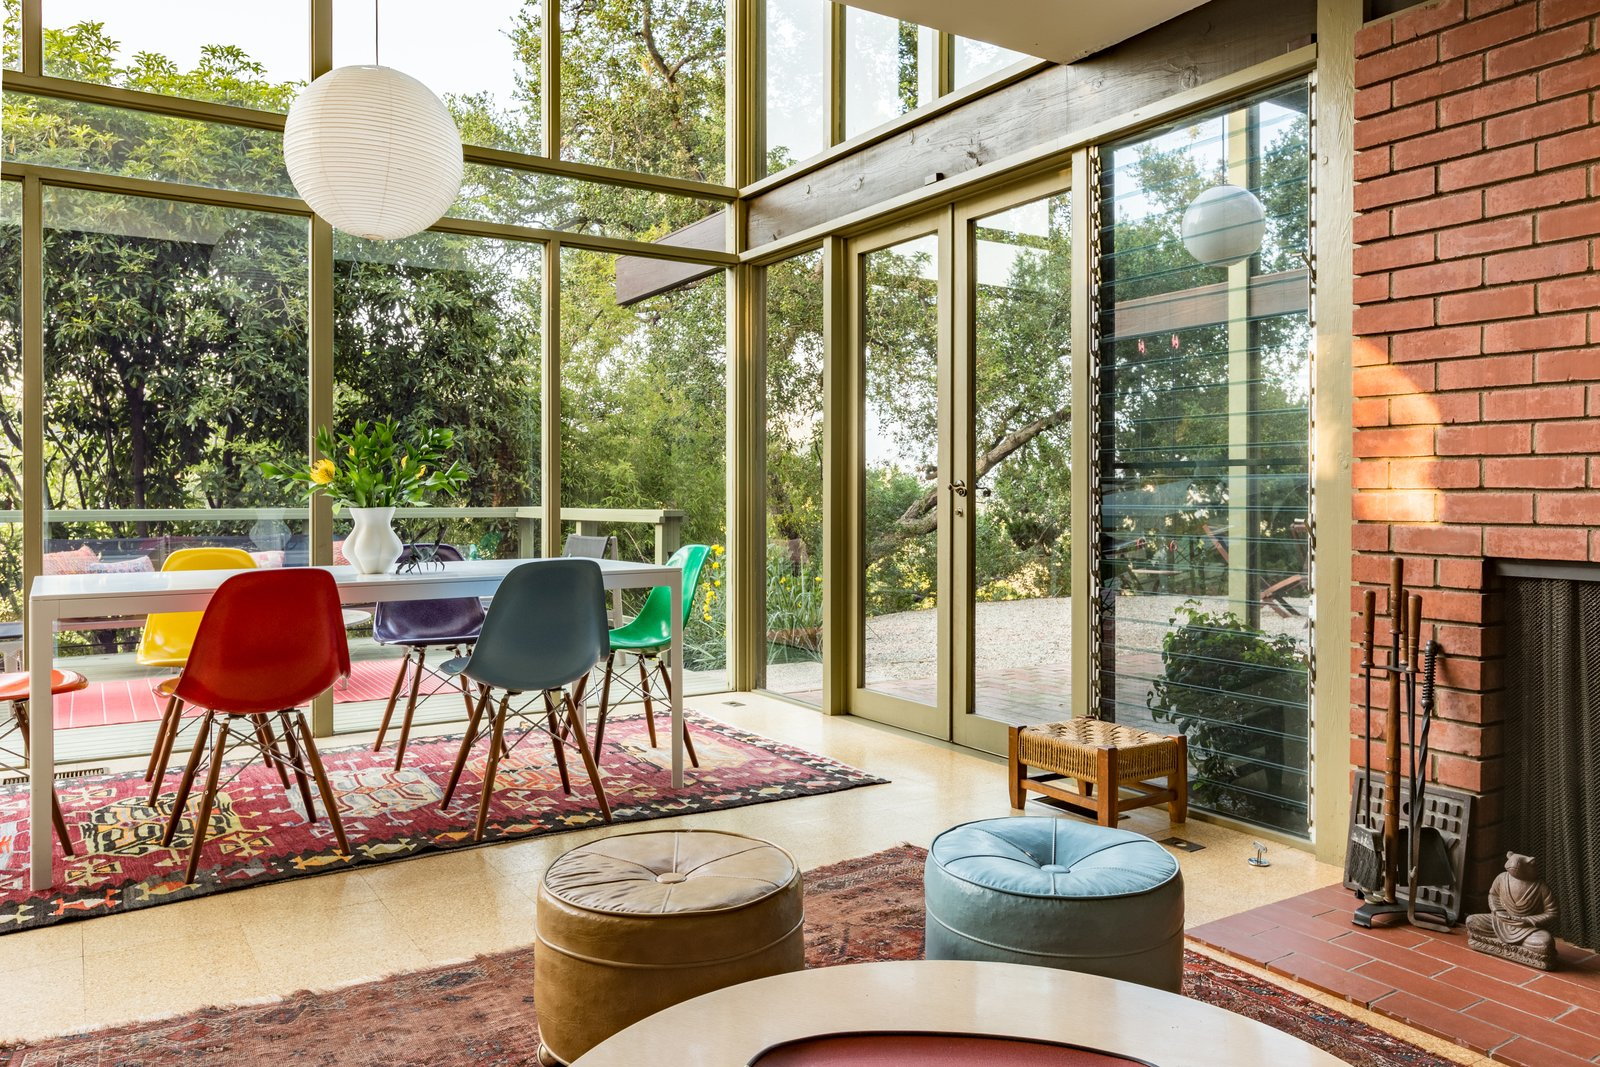 Dining Room, Table, Standard Layout Fireplace, Chair, Pendant Lighting, and Rug Floor Expansive glazing creates a beautiful flow and a strong integration of indoor/outdoor spaces.  Best Photos from Mad Men Producer Puts His Pasadena Midcentury Up For Auction Starting at $1.7M